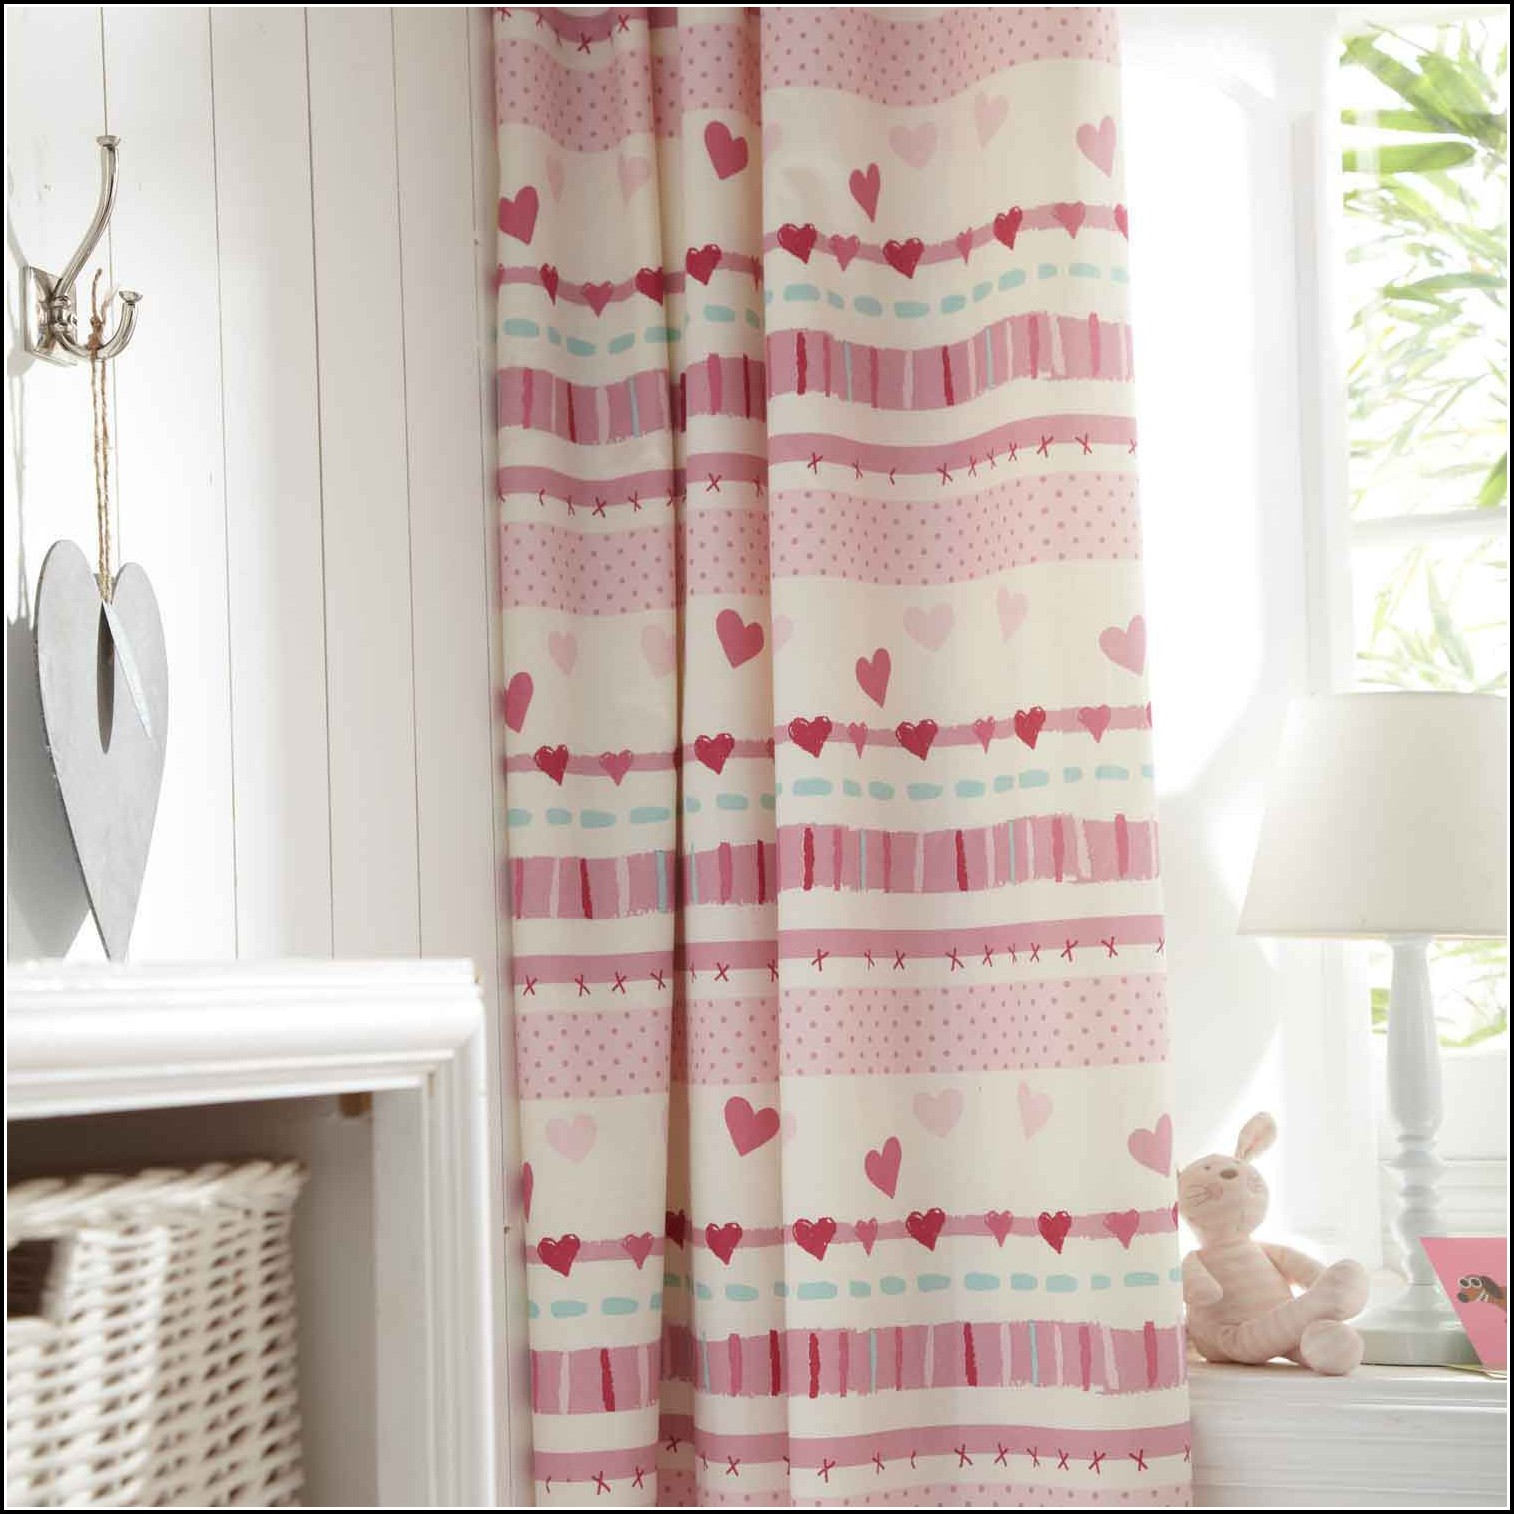 Blackout curtains for children s rooms curtains home for Blackout curtains for kids rooms